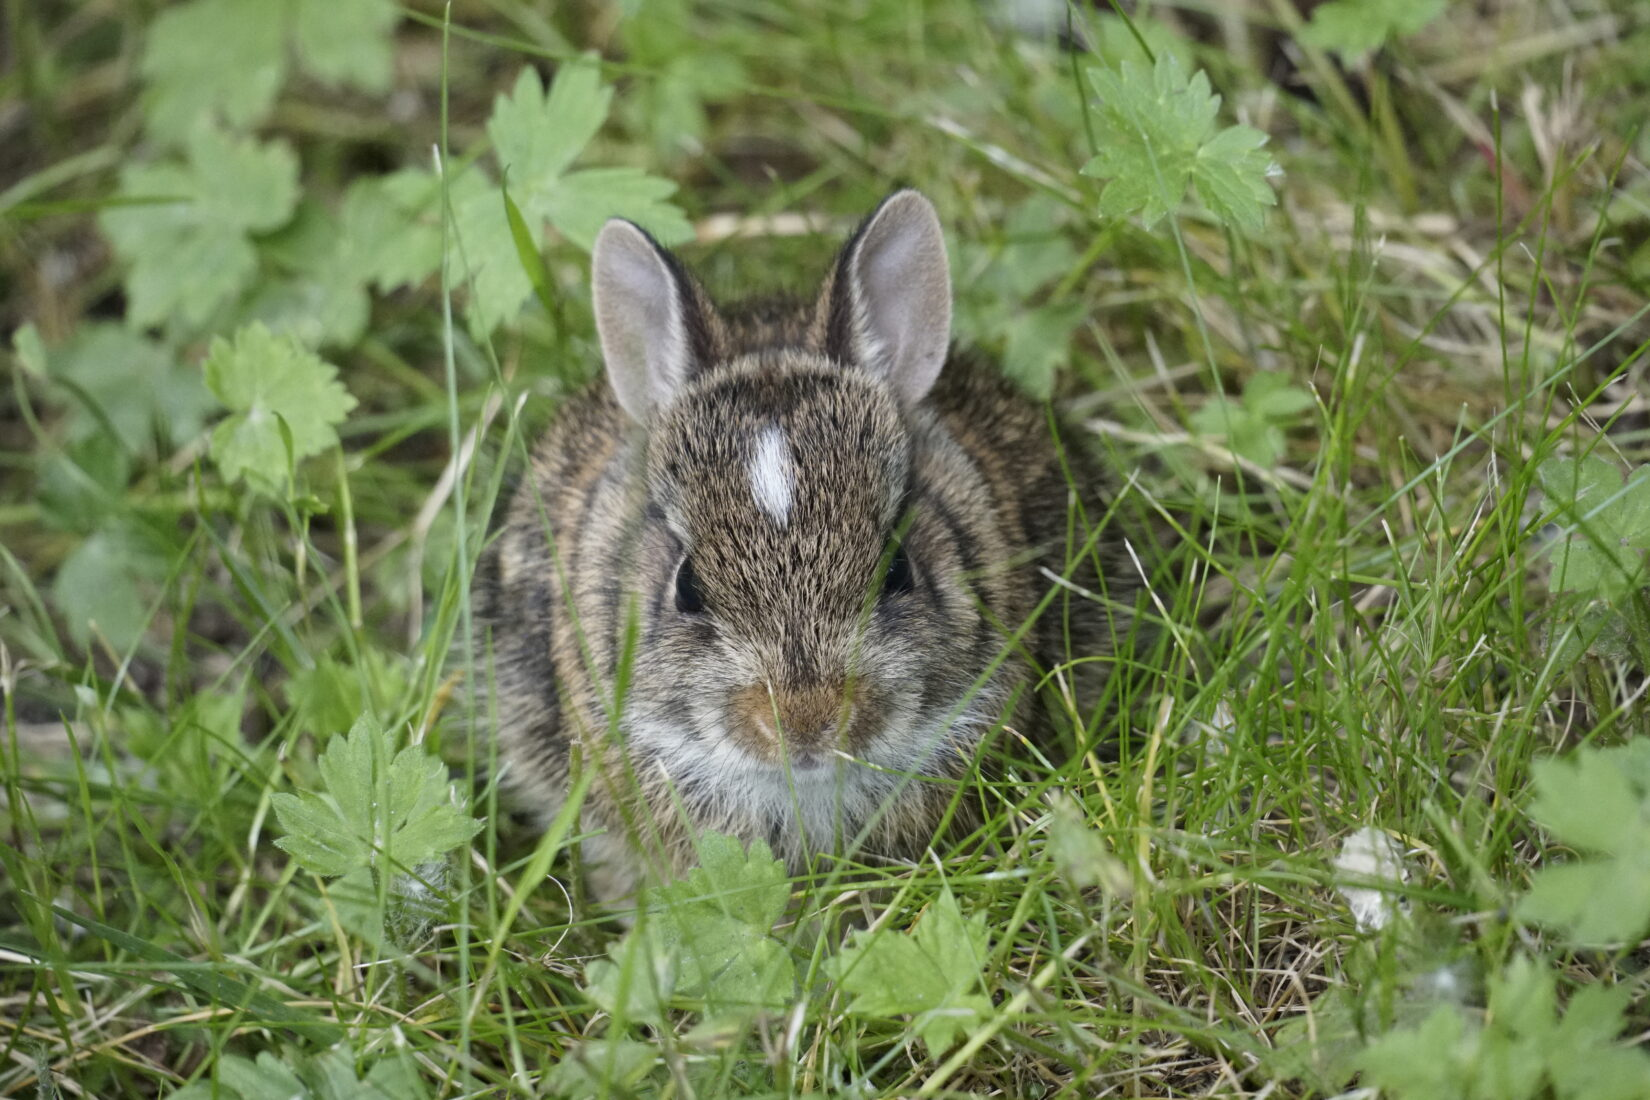 Baby cottontail rabbit in grass